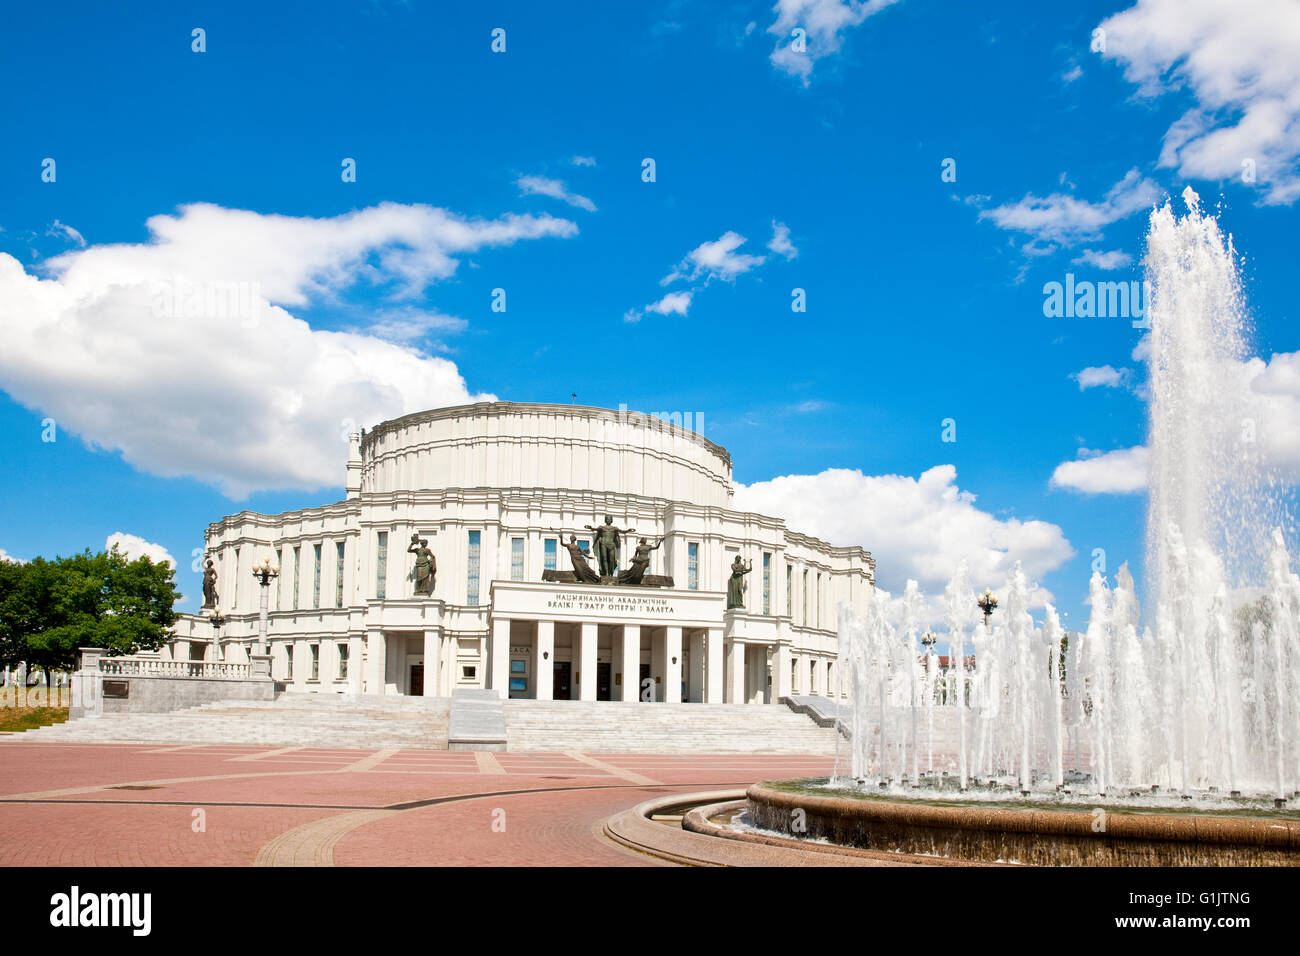 National Academic Grand Opera and Ballet Theater of the Republic of Belarus, Minsk - Stock Image